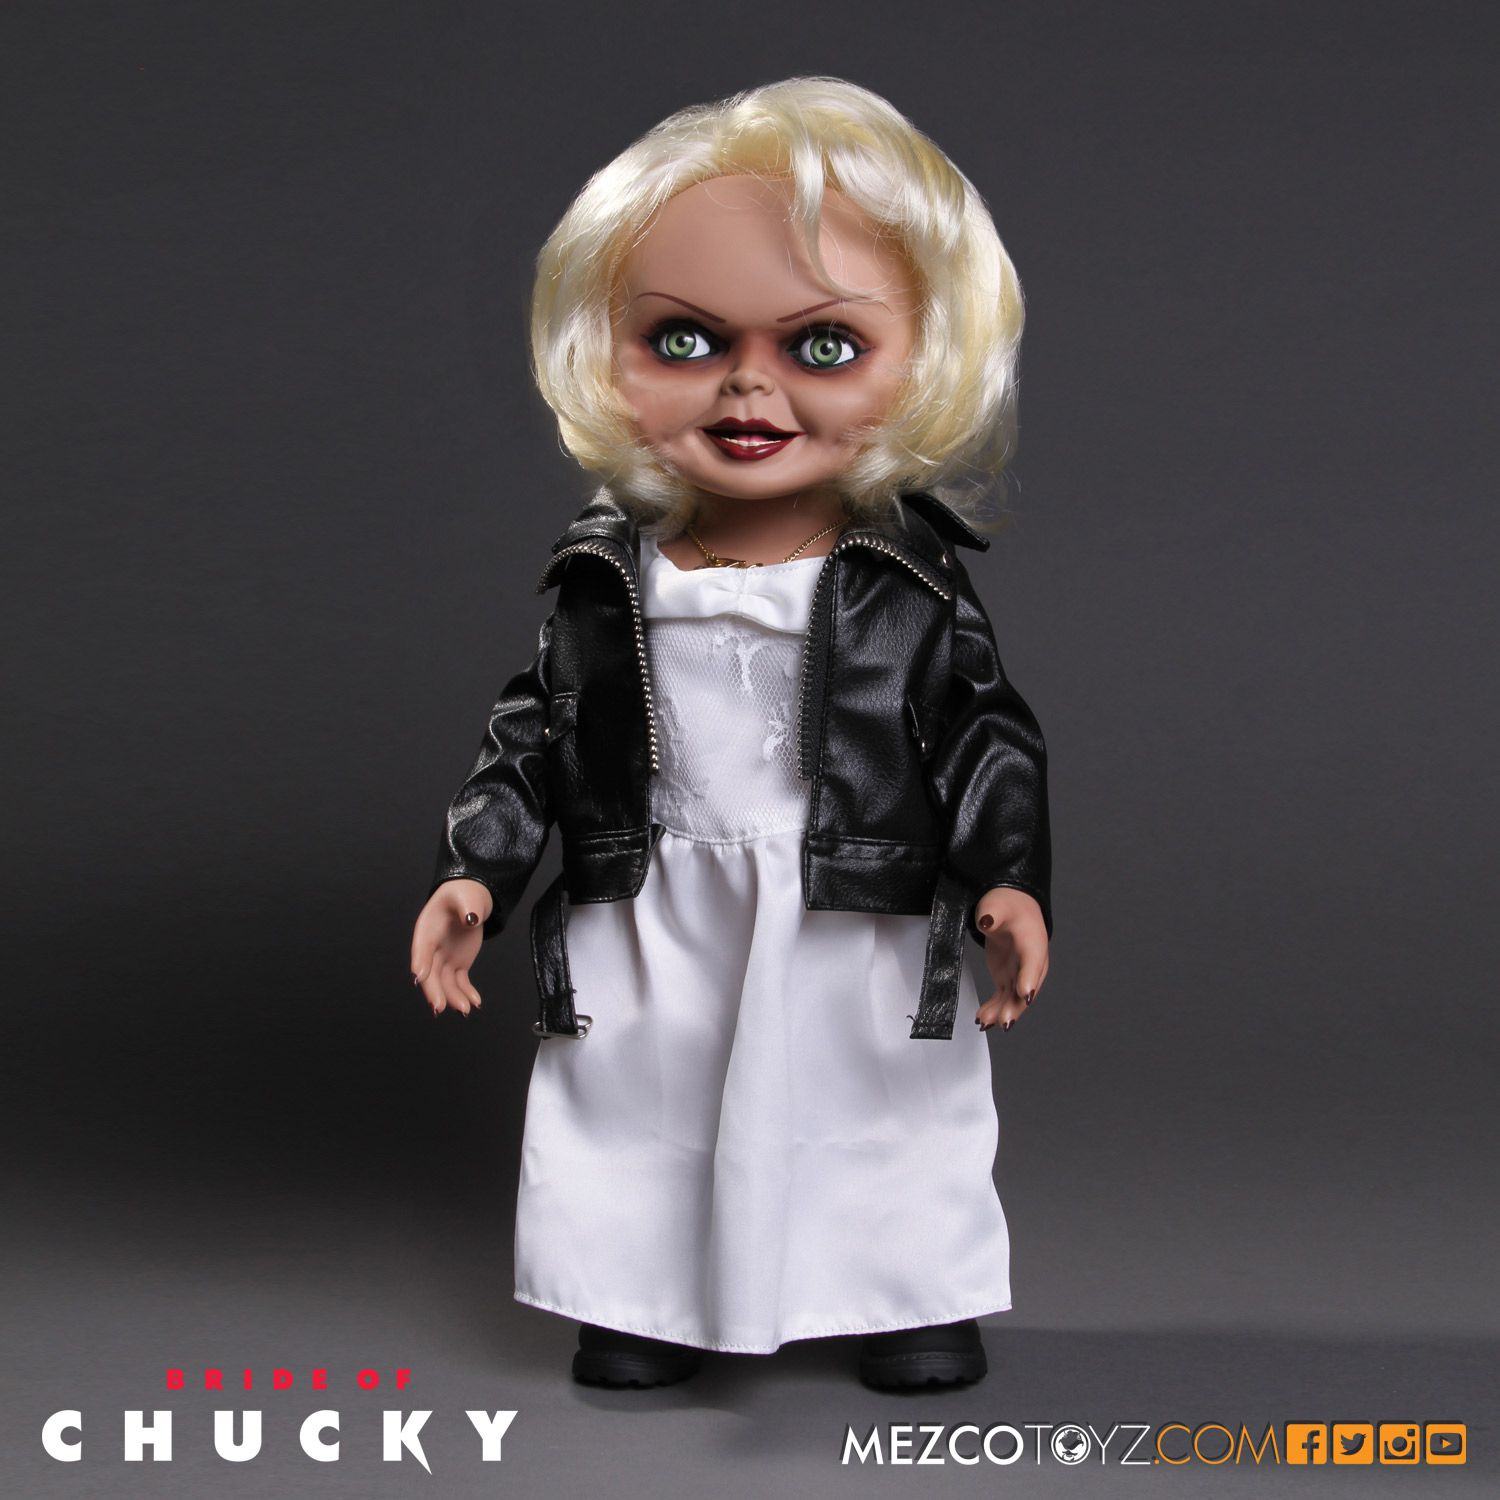 "Mezco Bride of Chucky Tiffany 15"" Talking Doll"